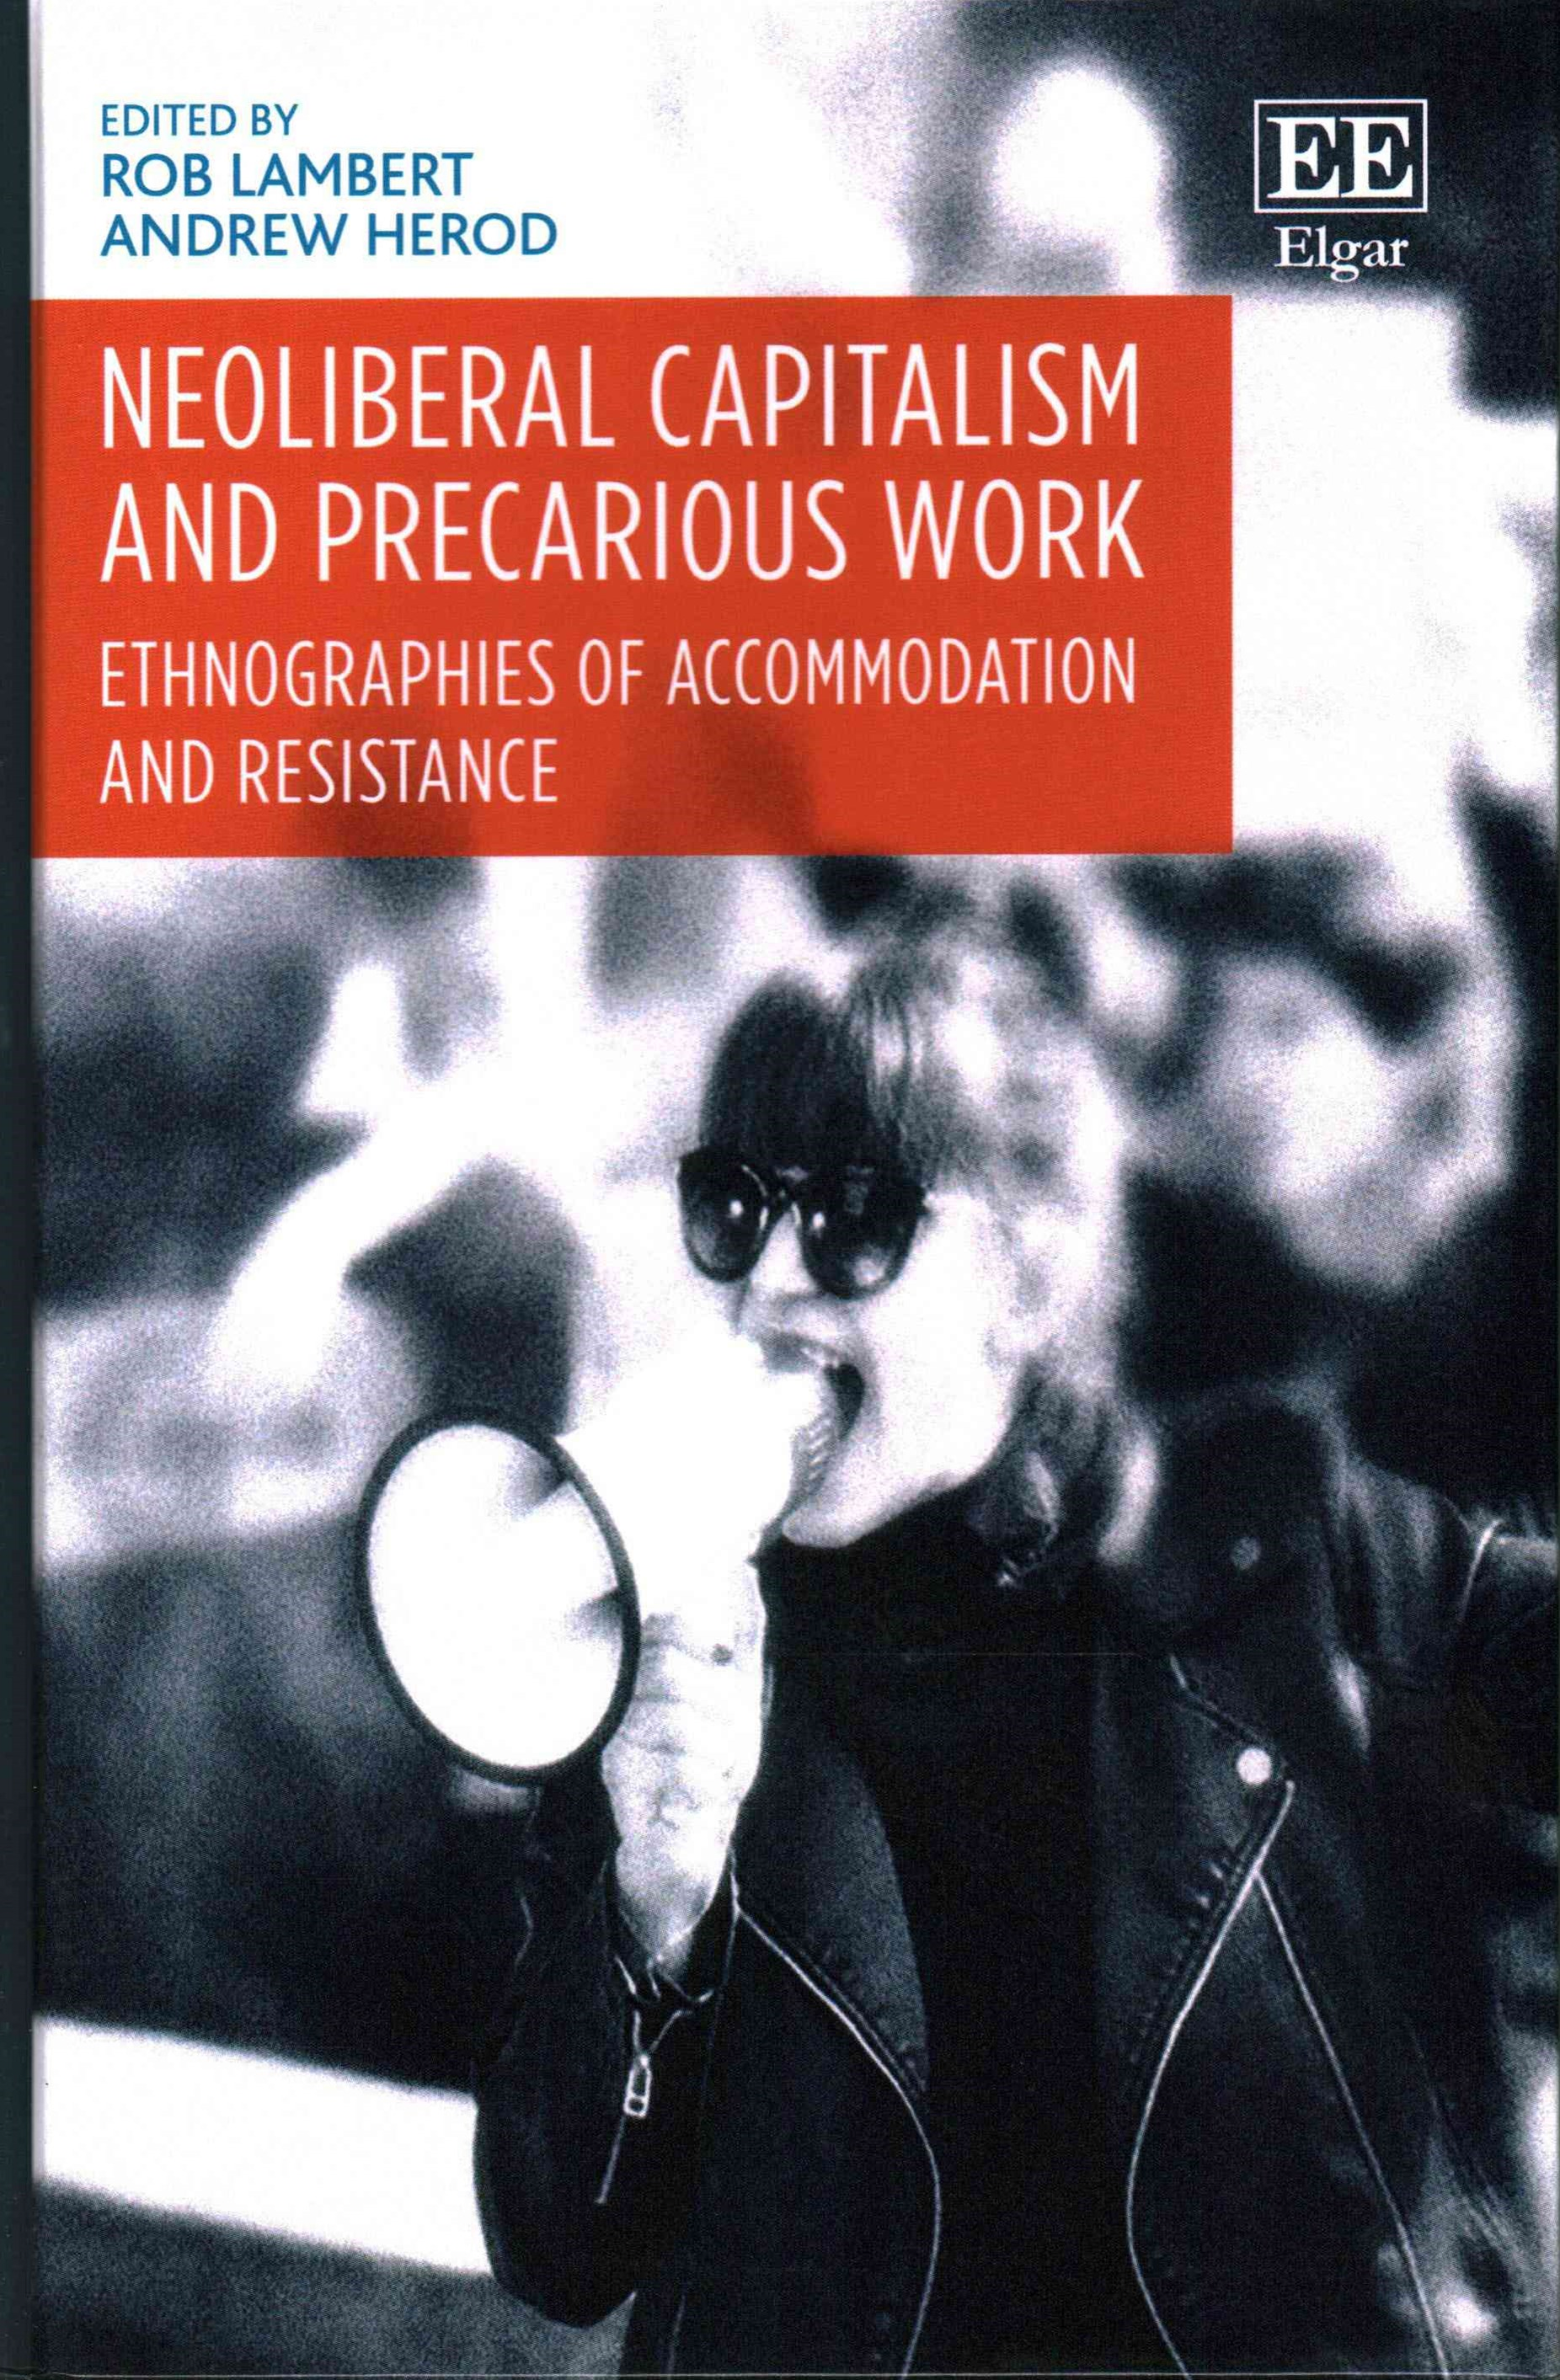 Neoliberal Capitalism and Precarious Work